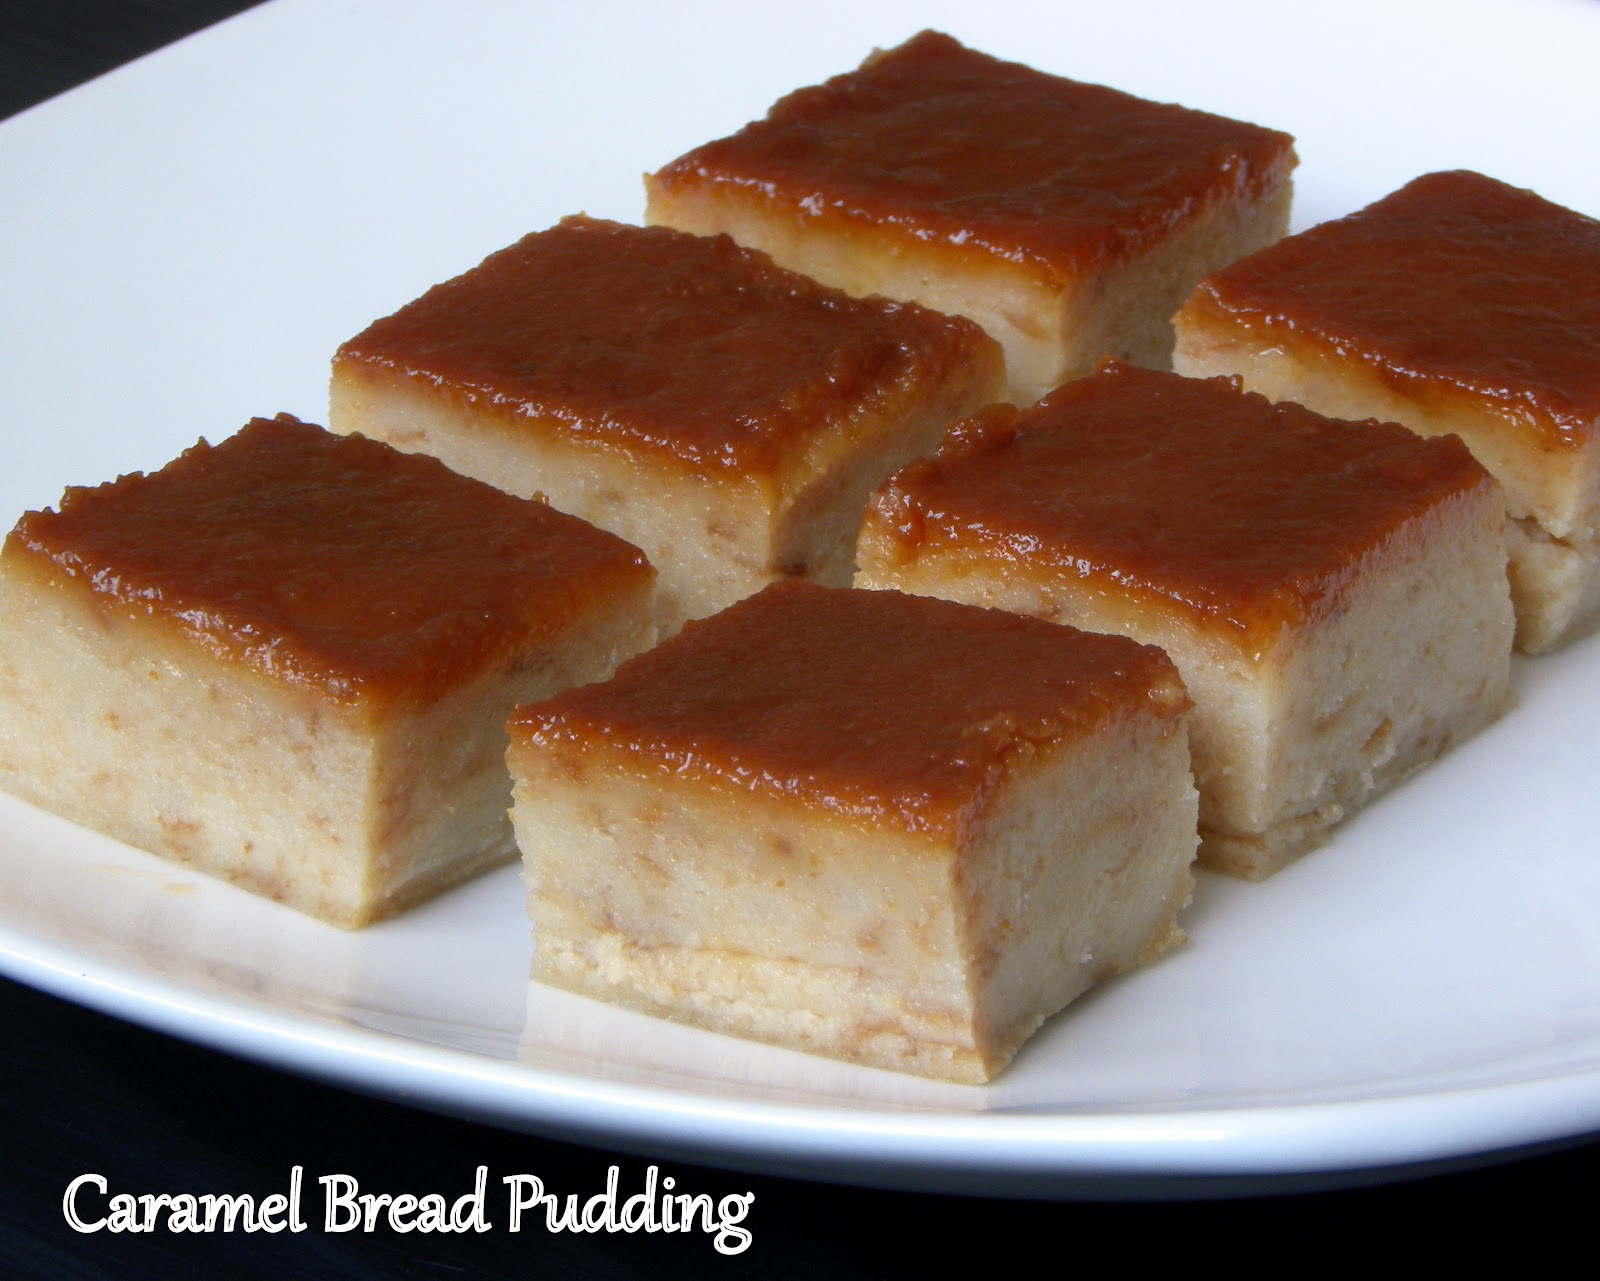 Tasty Treats: Caramel Bread Pudding